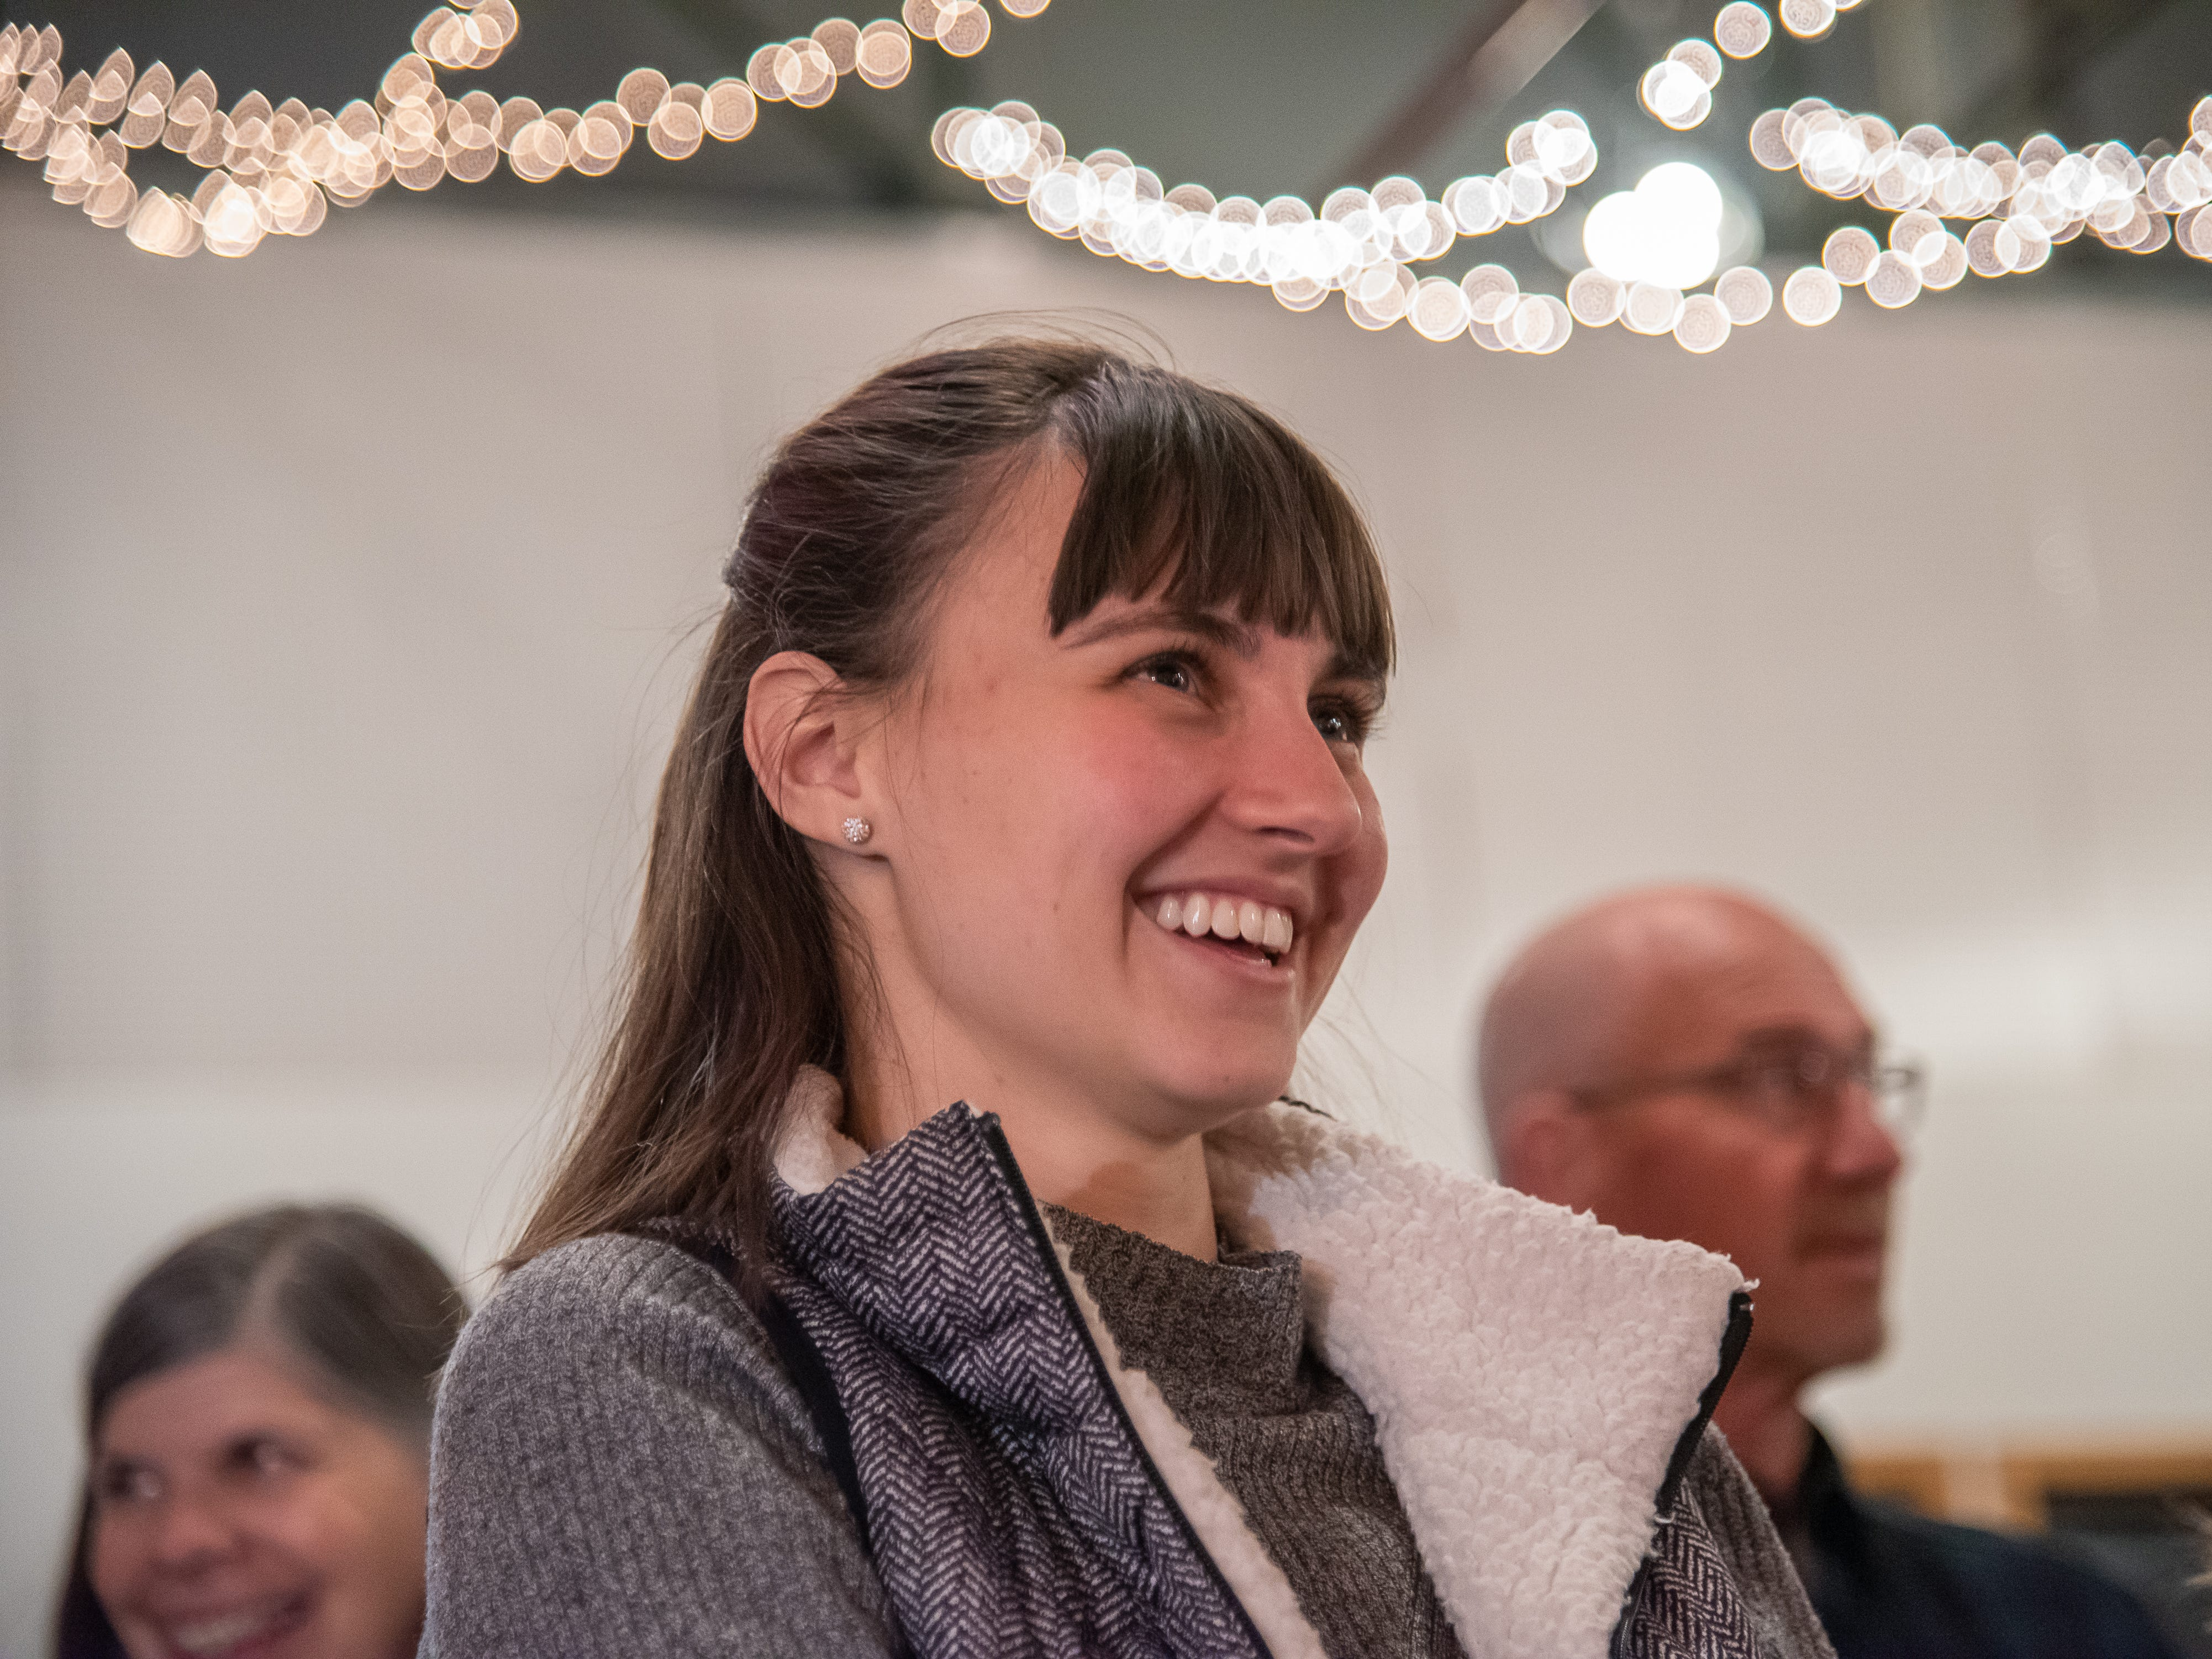 Audience member Nicole Bondy laughs  as a storyteller speaks of love and heartbreak during the Coloradoan Storytellers Project at Everyday Joe's Coffee House on Wednesday, February 20, 2019, in Fort Collins, Colo.